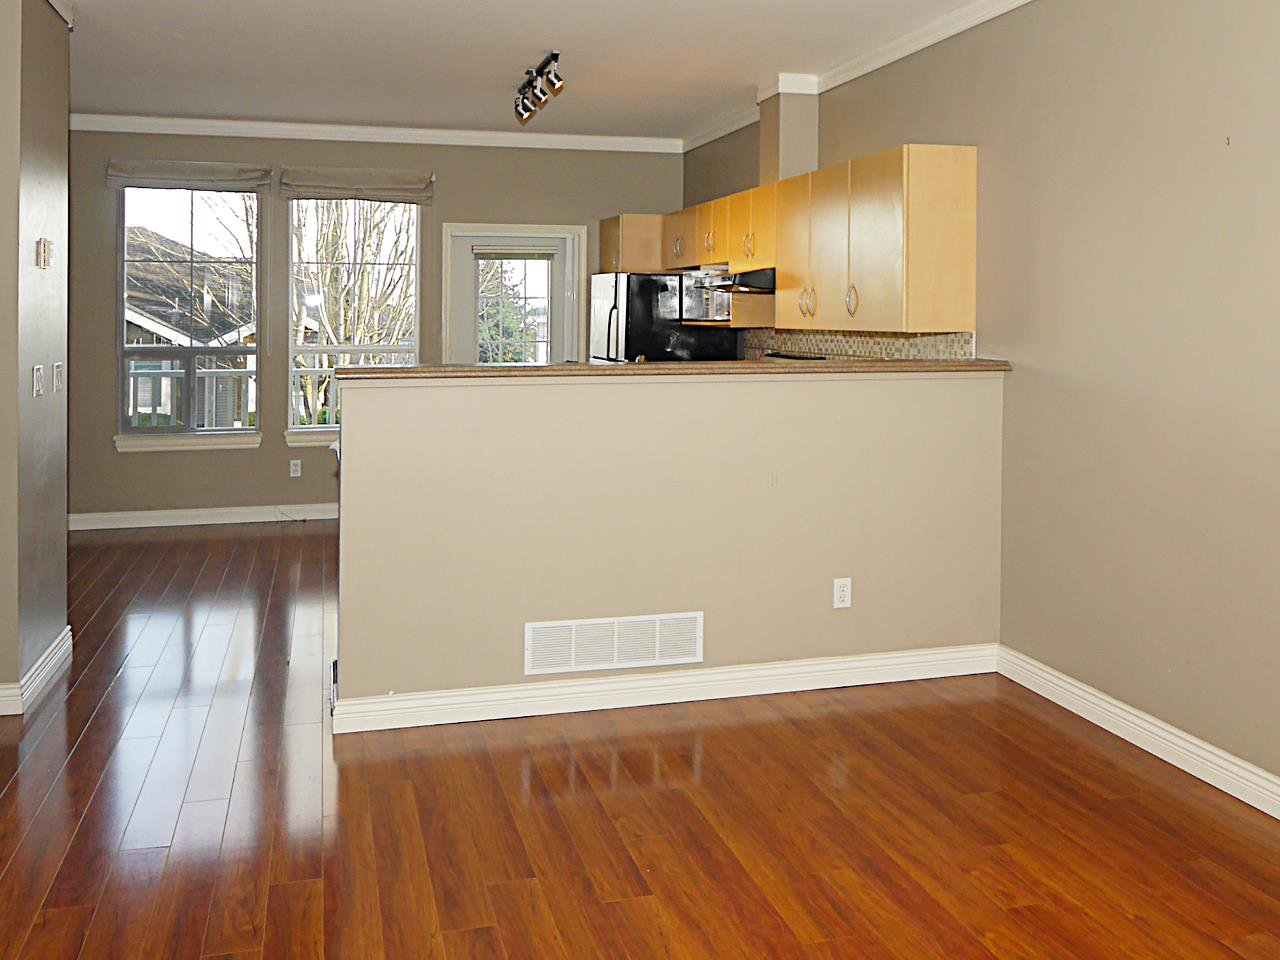 """Photo 2: Photos: 27 14952 58 Avenue in Surrey: Sullivan Station Townhouse for sale in """"HIGHBRAE"""" : MLS®# R2440469"""